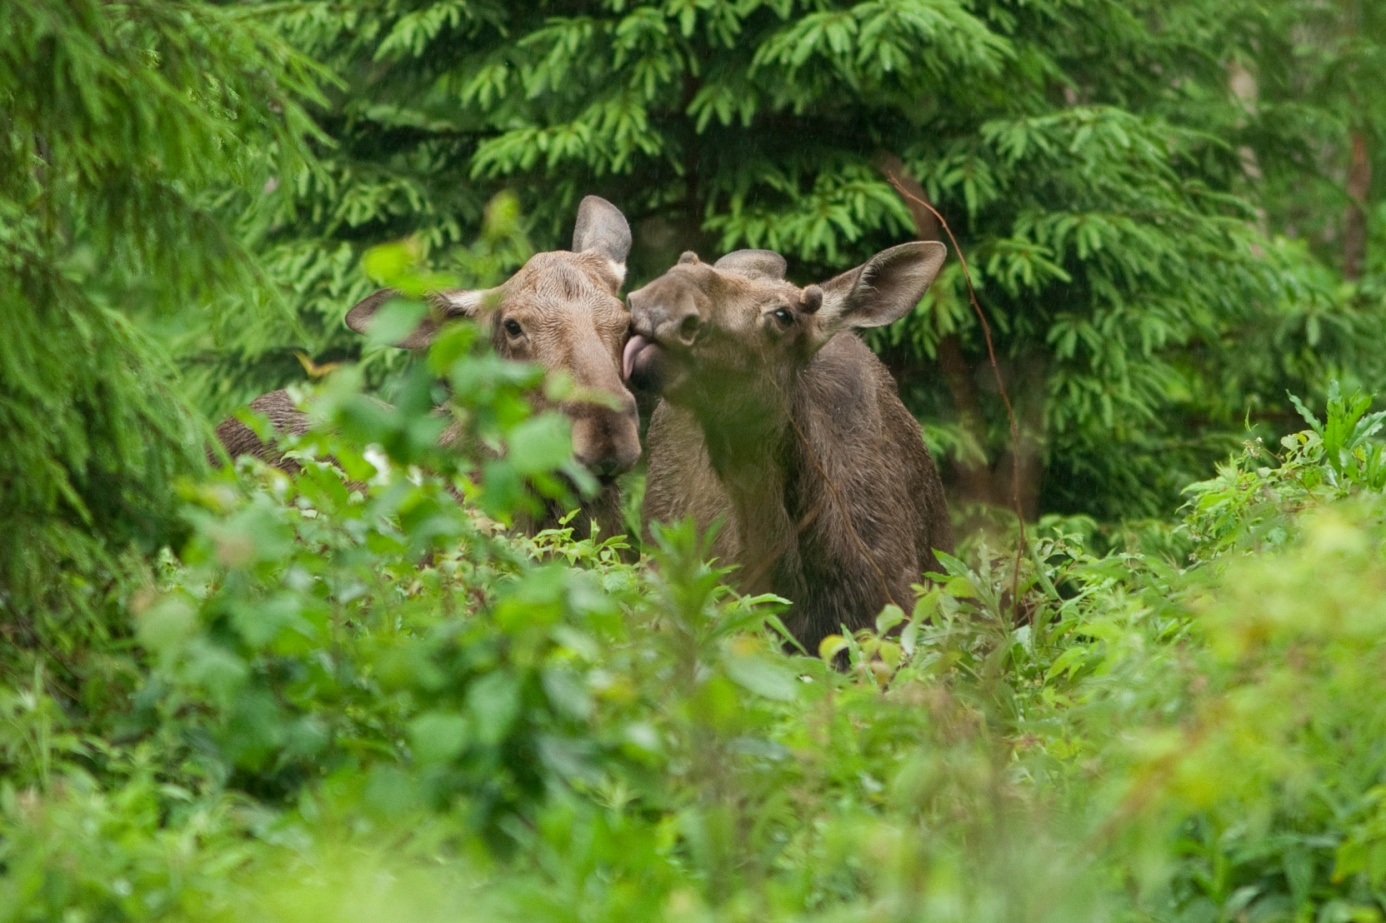 Moose photography in Estonia